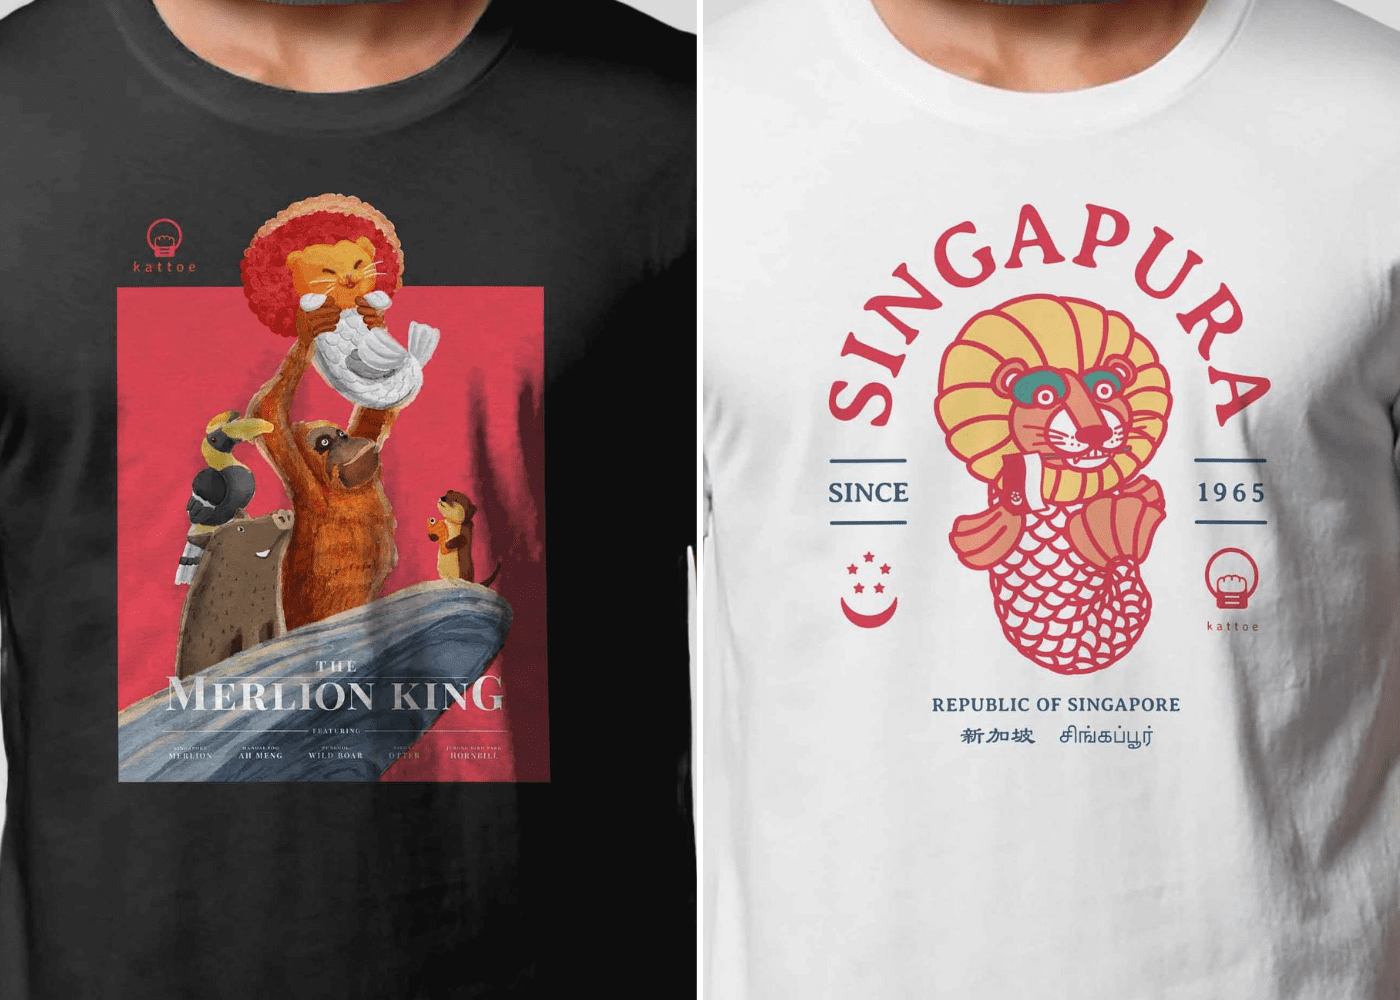 kattoe design merlion tees | singapore souvenirs